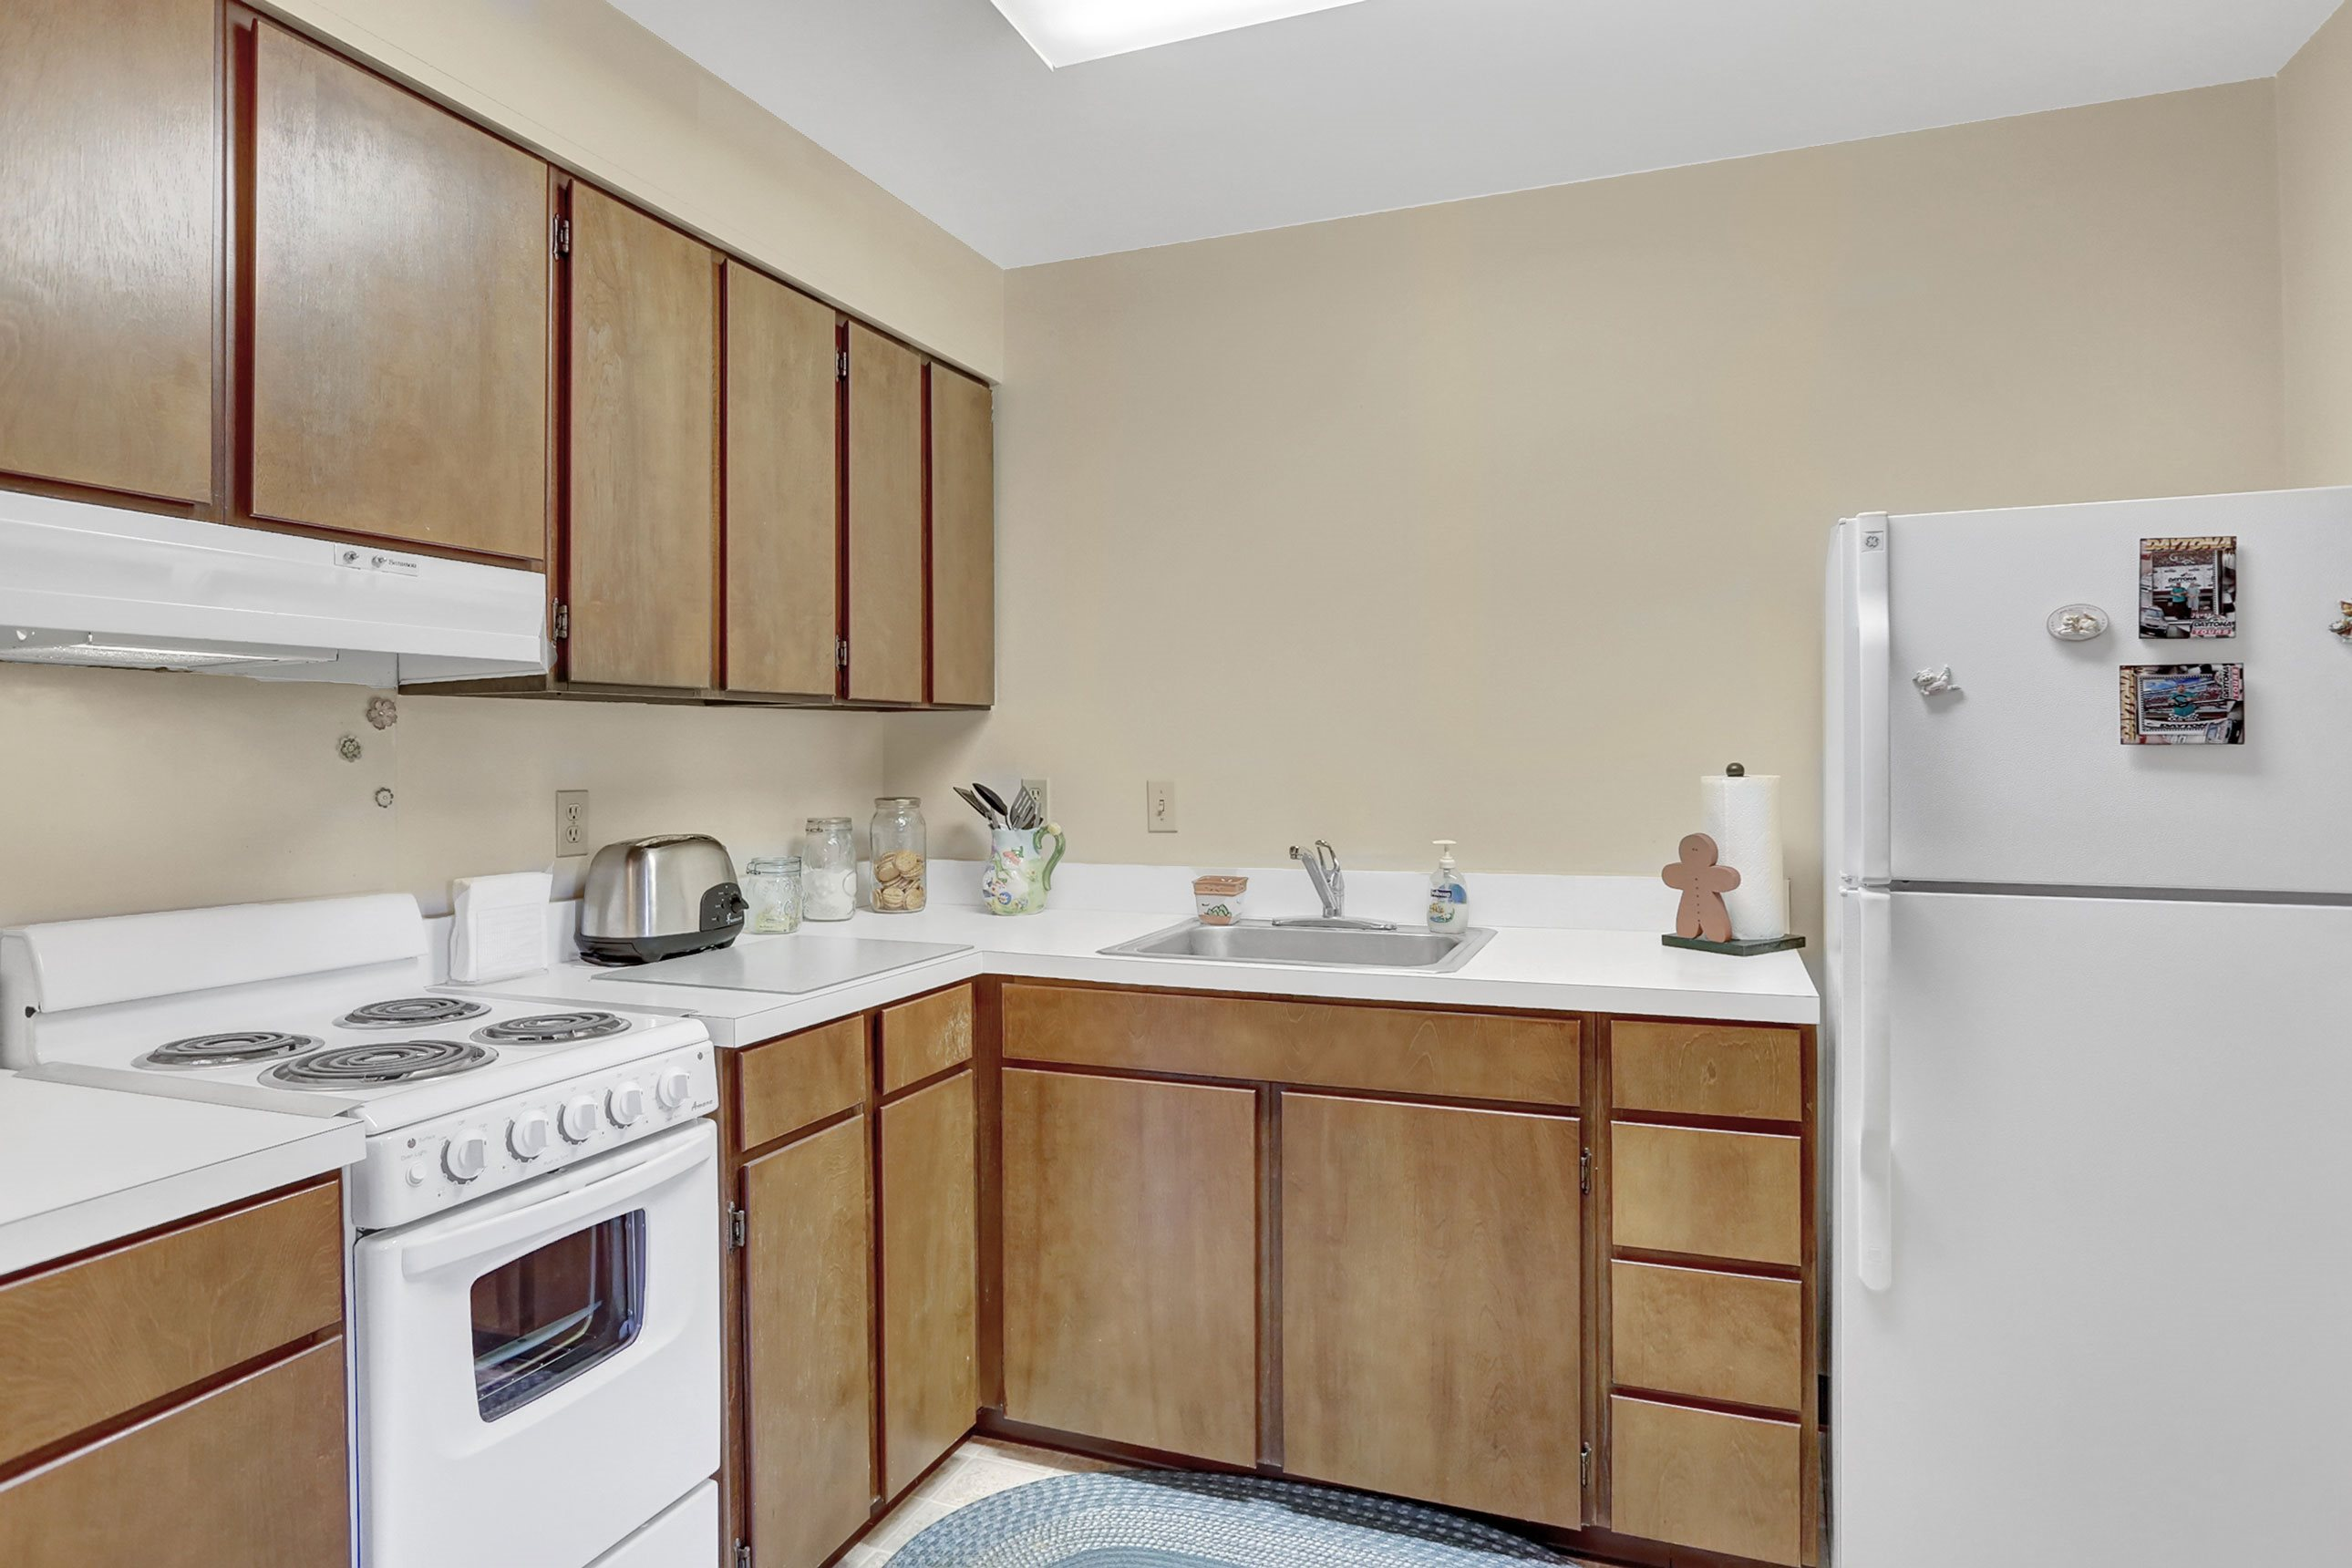 Apartment in Lock Haven, PA | Oak Grove Apartments | Property Management, Inc.